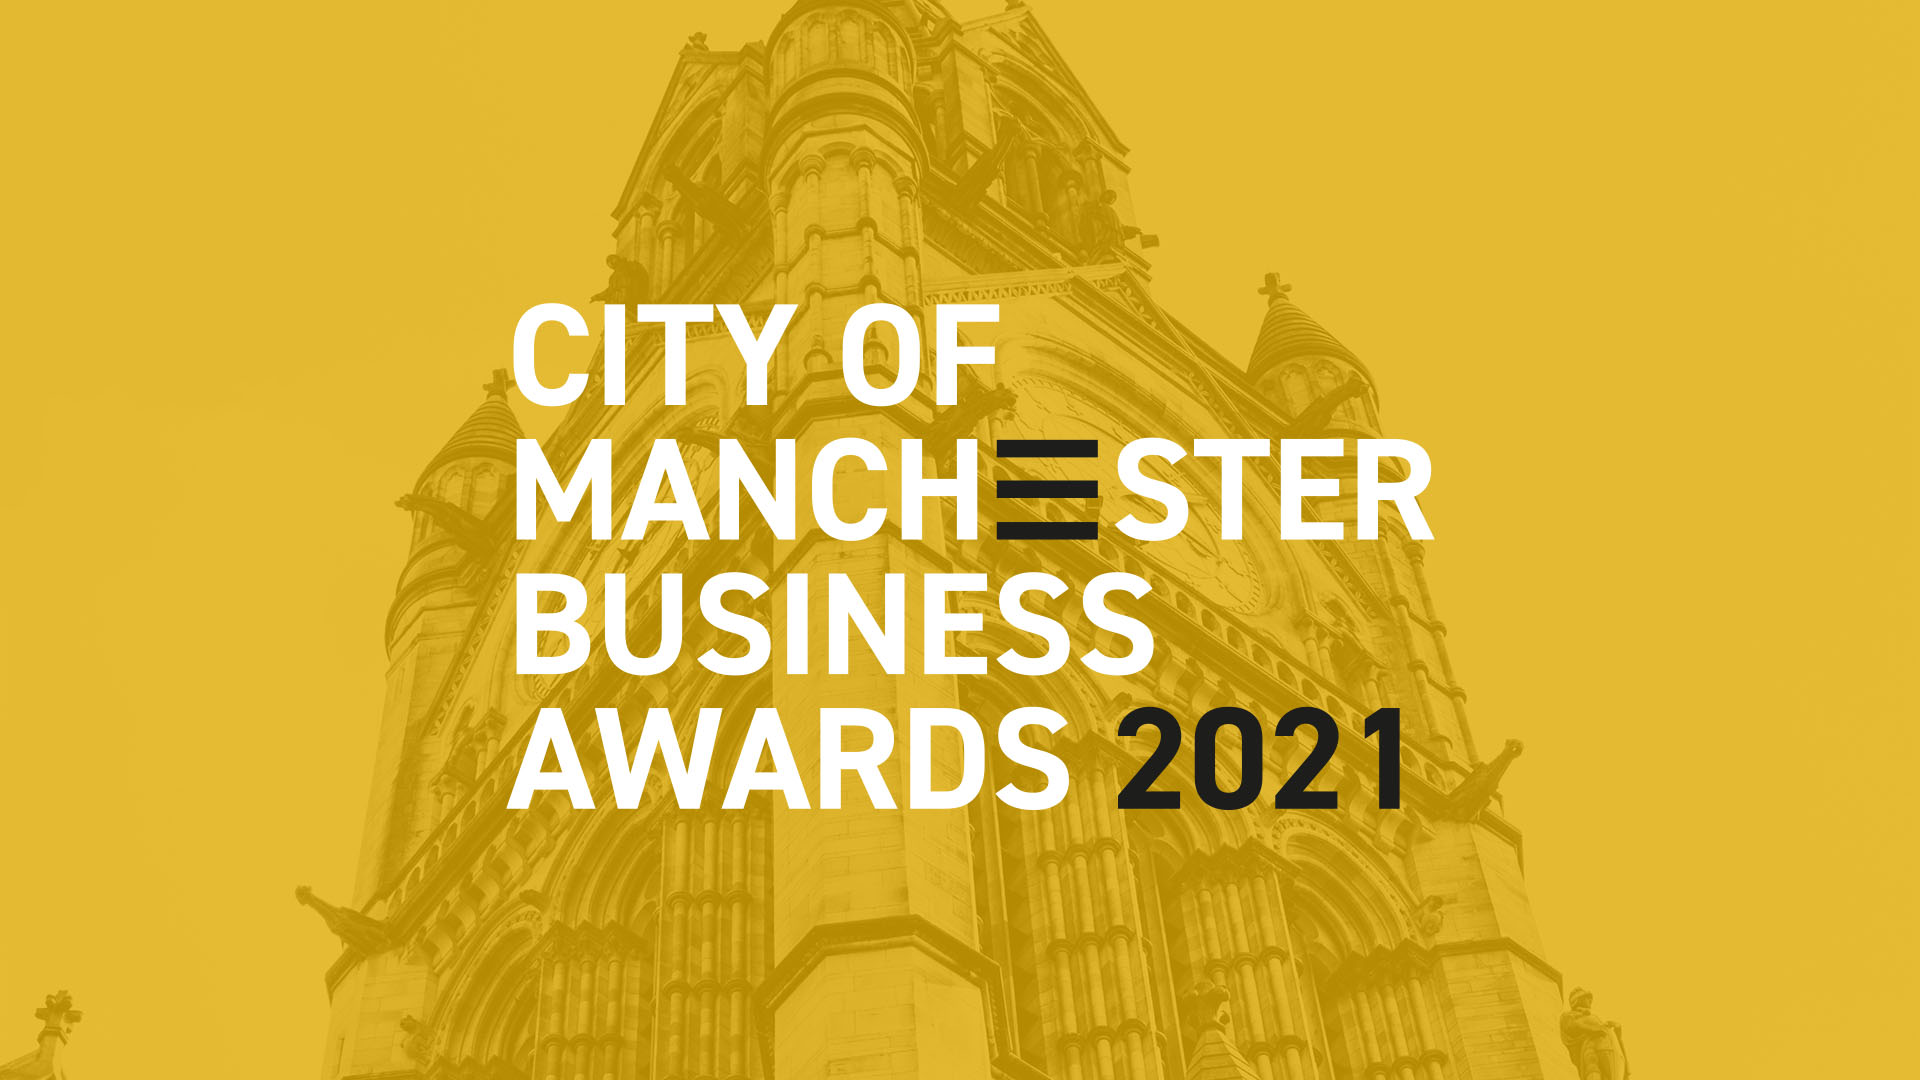 DIB celebrates the best of Manchester business